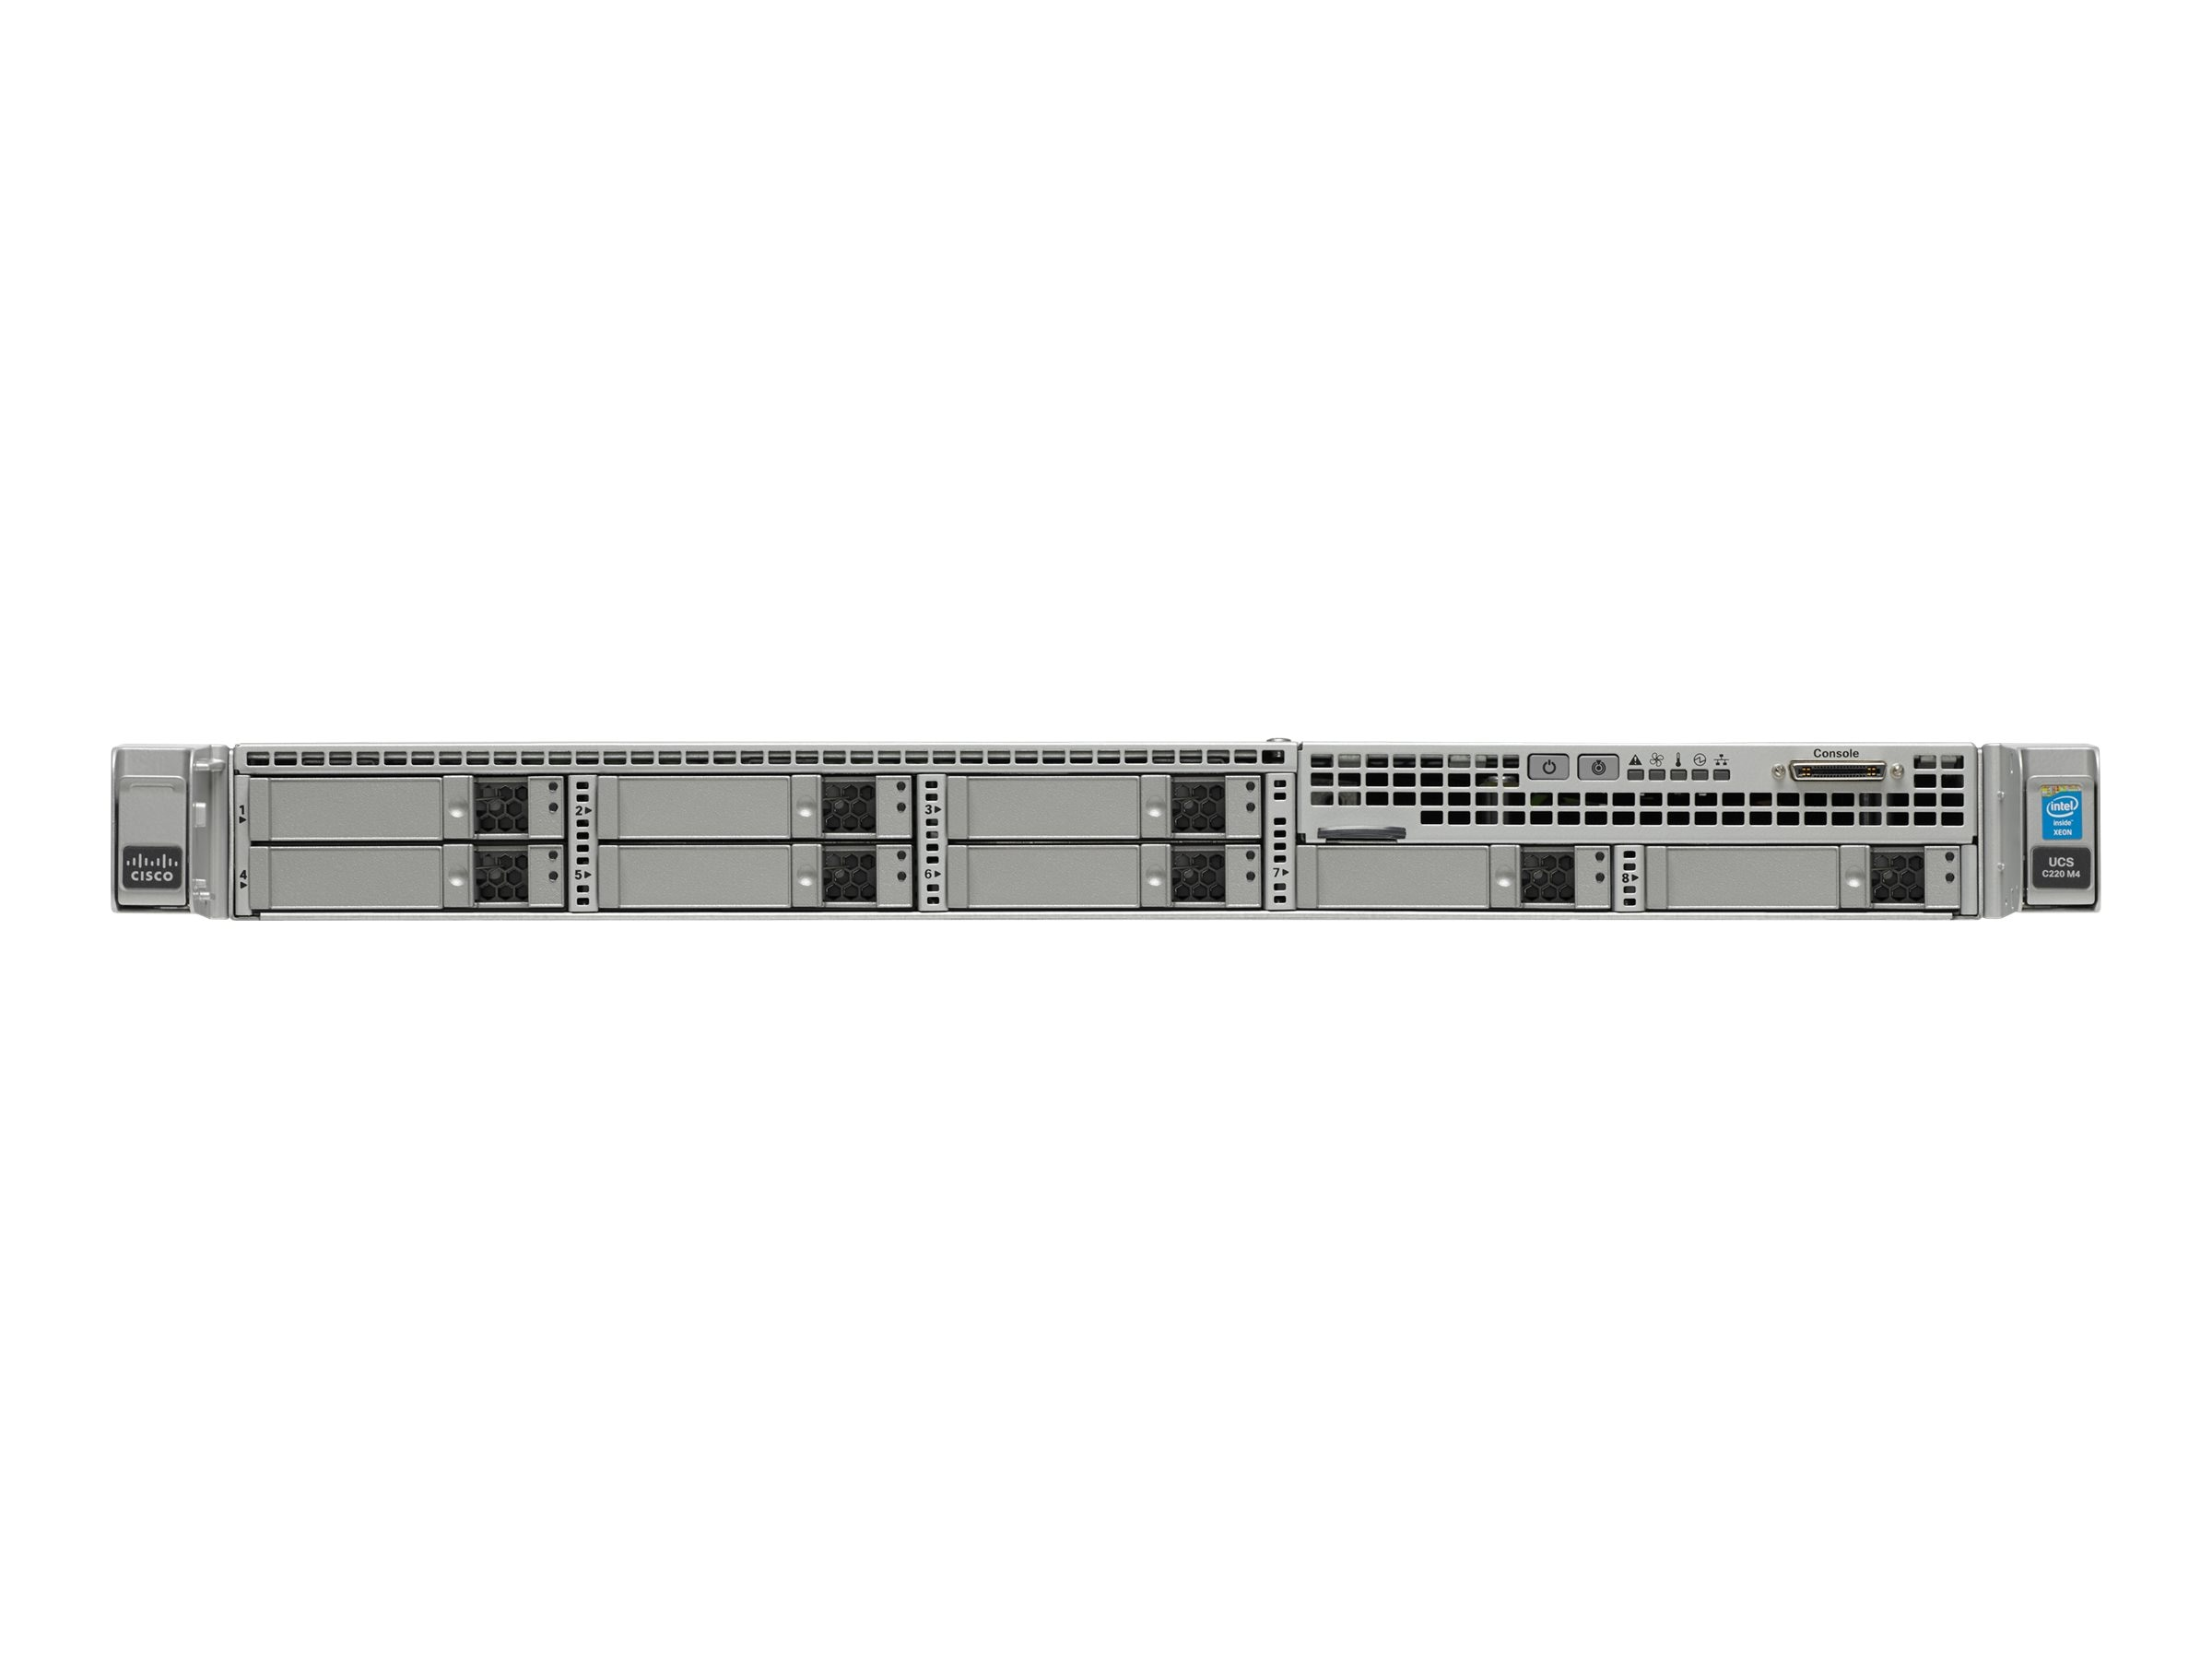 Cisco Not Sold Standalone UCS SP Select C220 M4S Advanced 1 (2x)Xeon E5-2680 v3 128GB VIC1227, UCS-SP-C220M4-A1